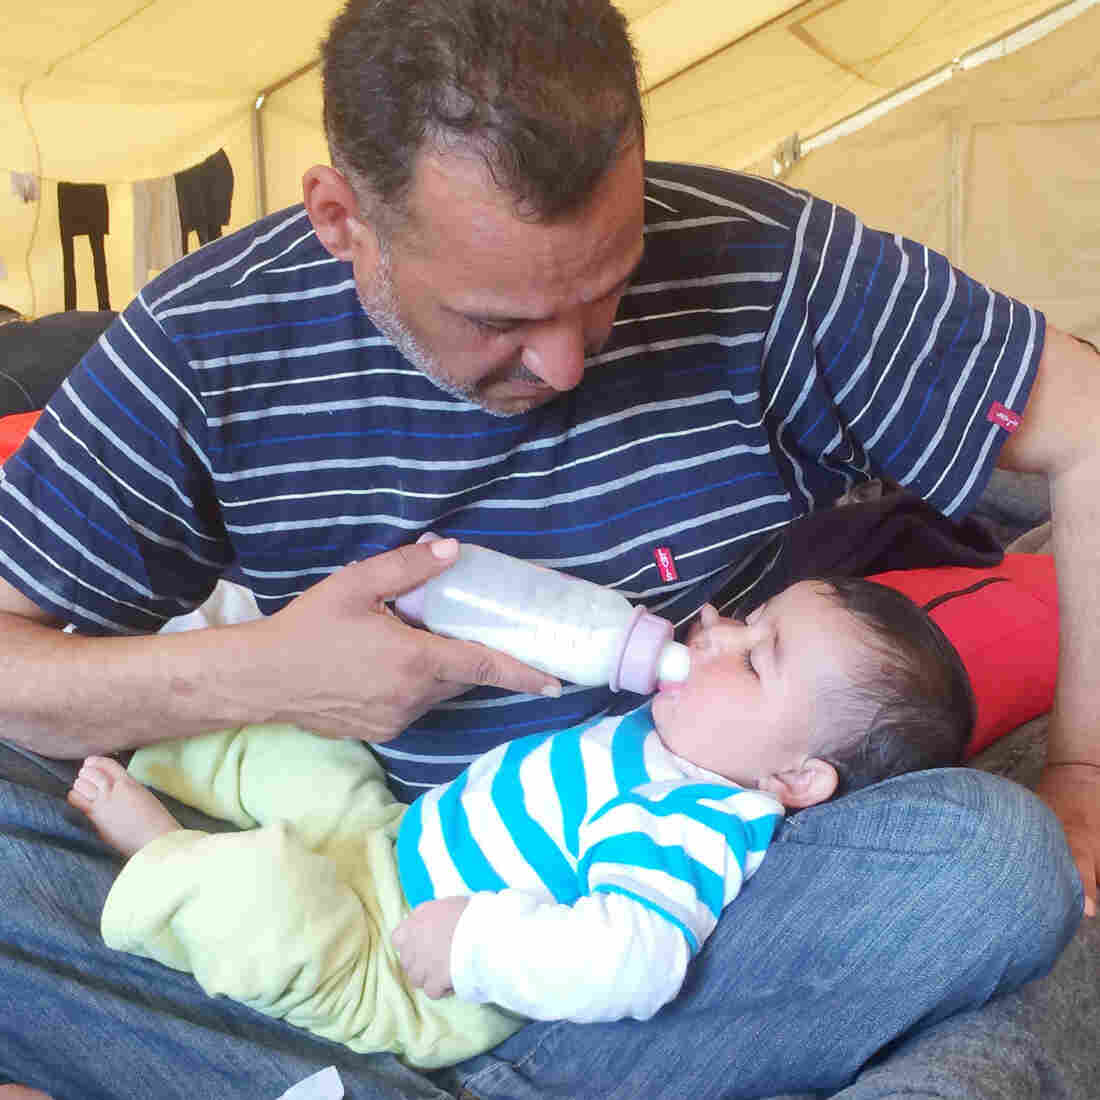 Moyaad Saad, a 43-year-old former civil servant from Baghdad, feeds his 6-month-old daughter Zahara on their cot in a giant tent at a makeshift migrant camp near the border between Greece and Macedonia. Thousands of asylum seekers are now stuck here after several European countries closed their borders to them.